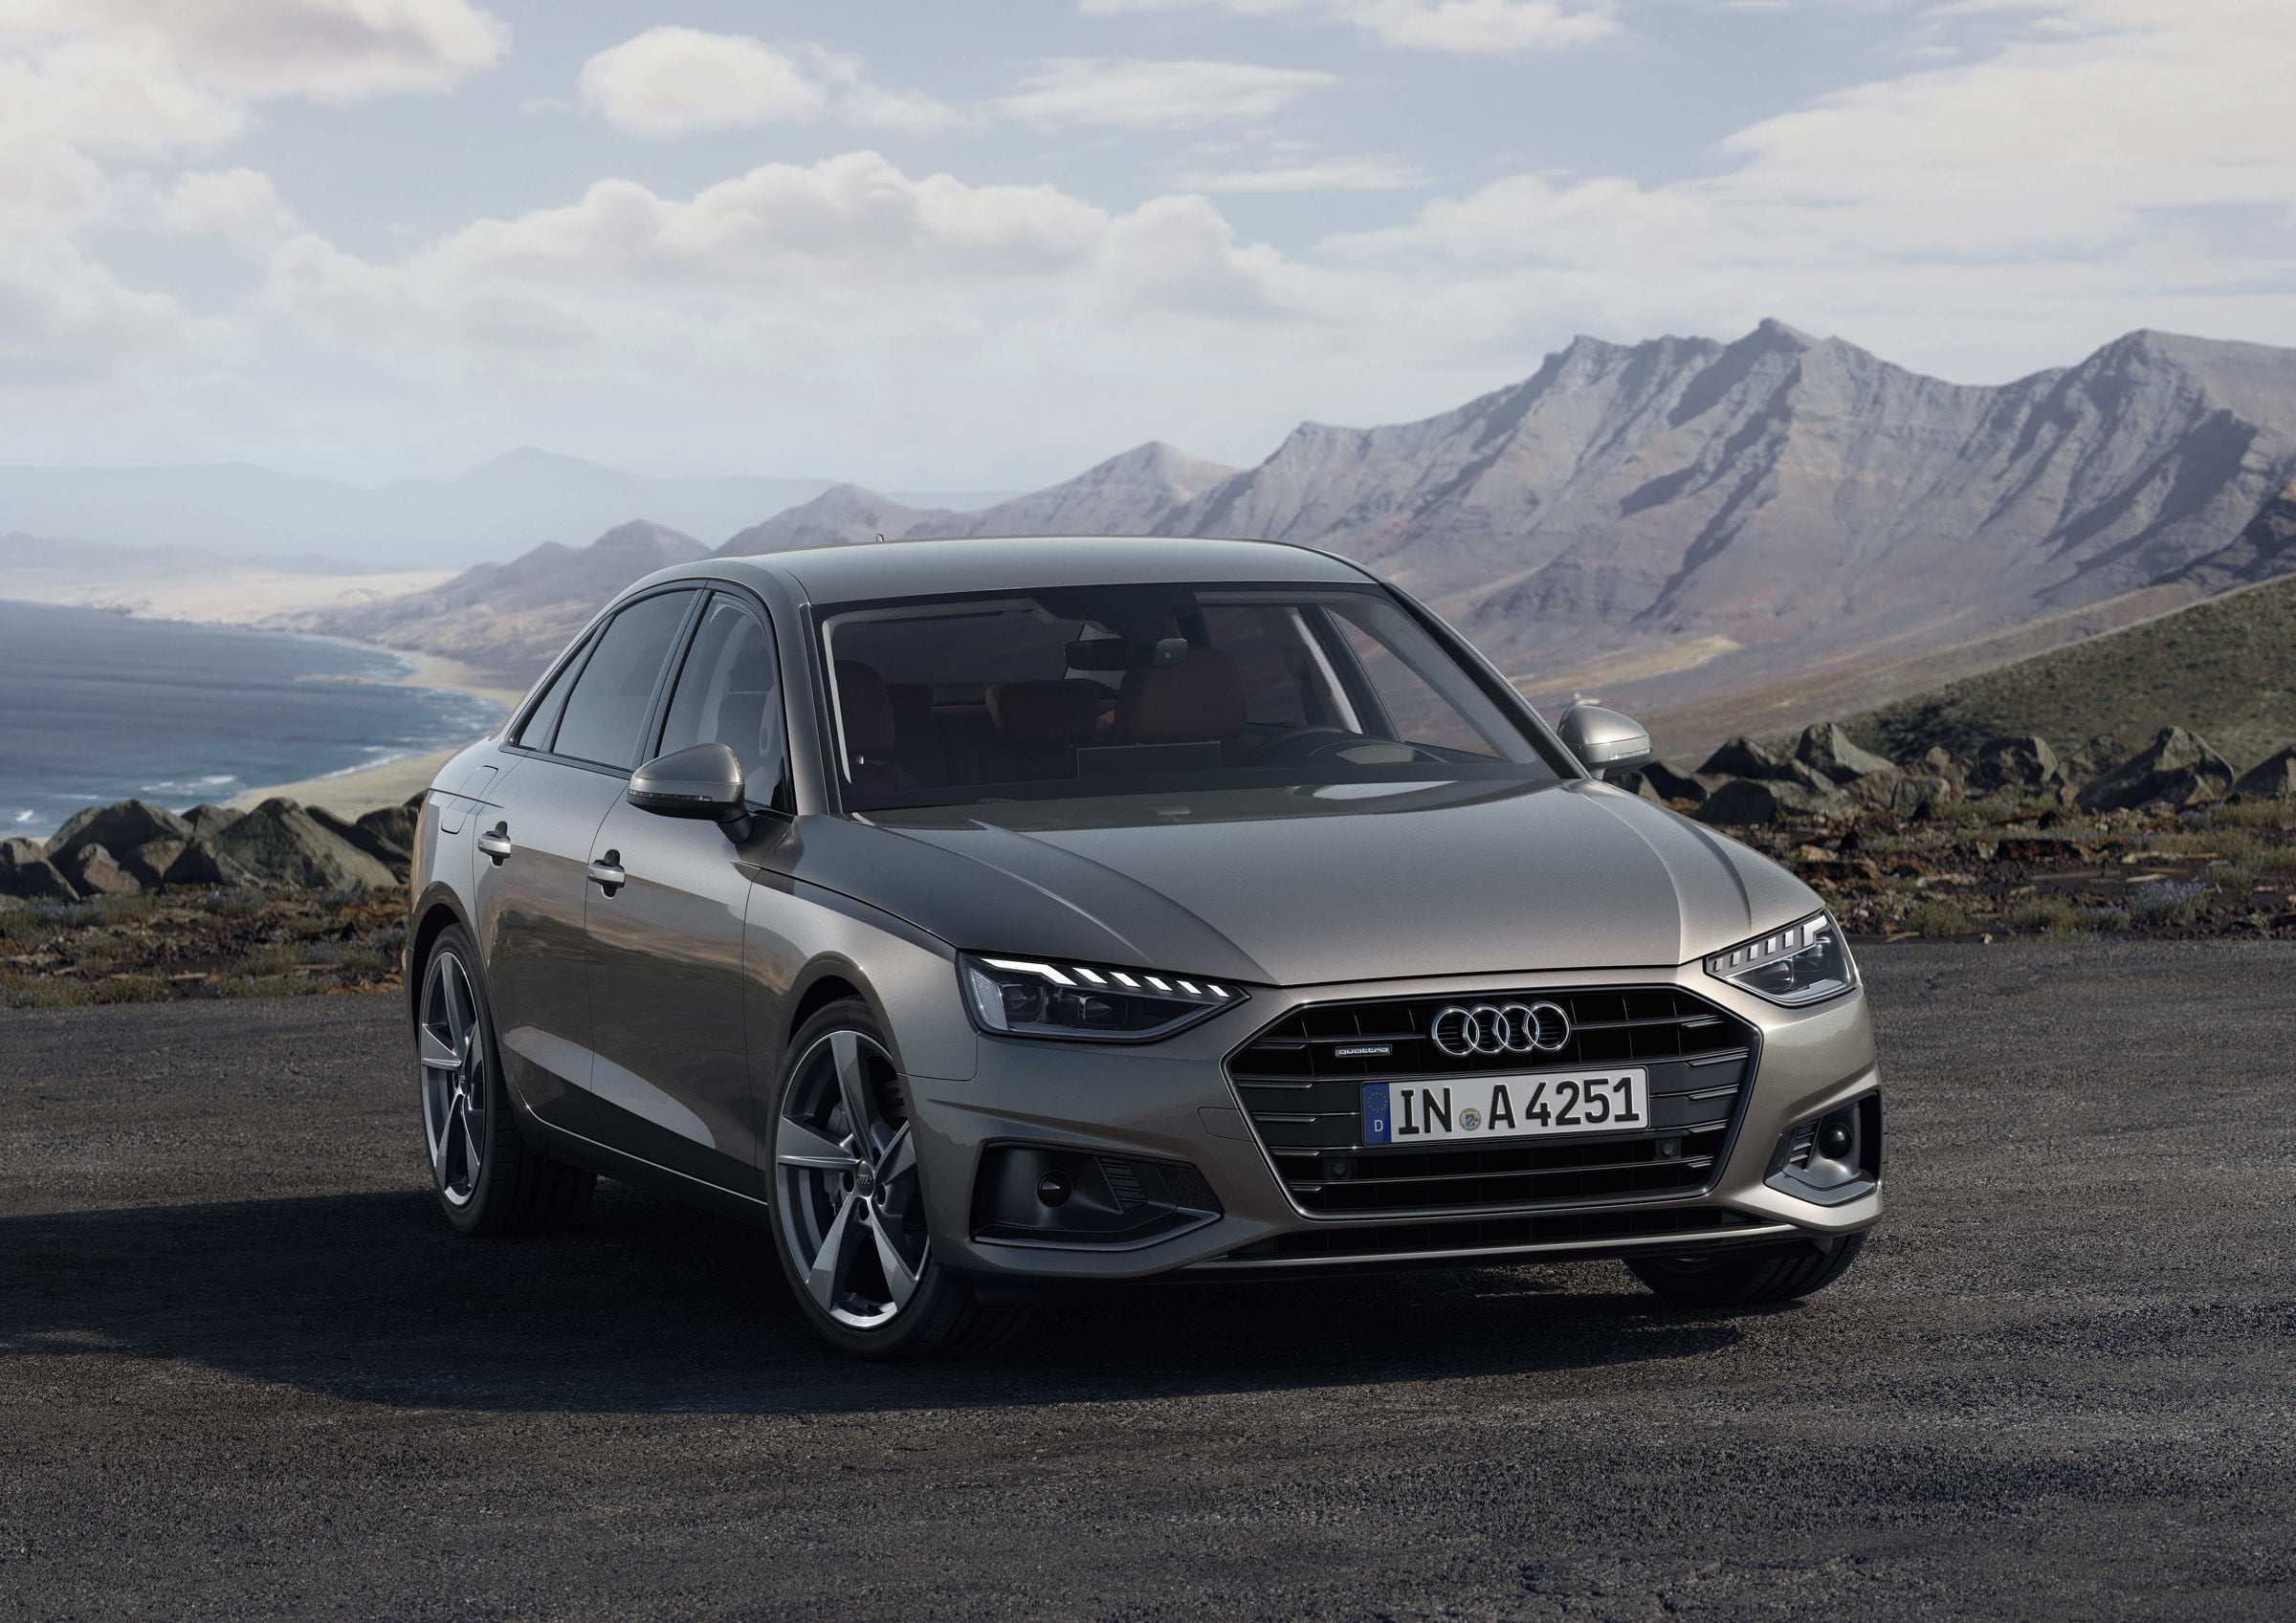 68 The 2020 Audi A4 Specs And Review